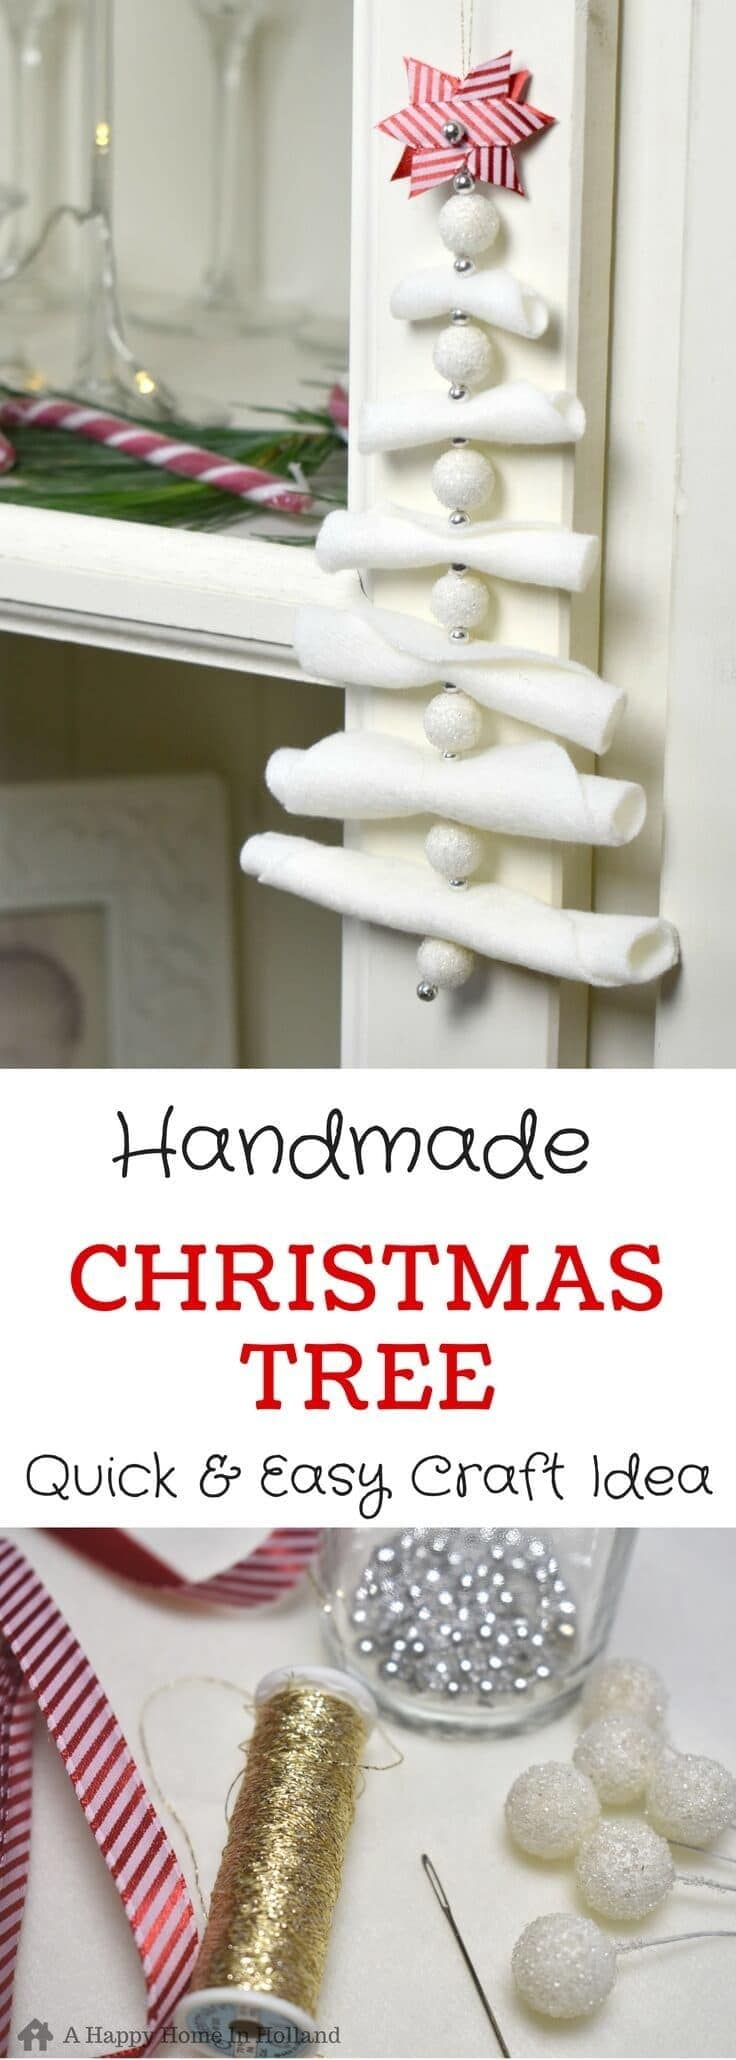 DIY Christmas Tree Decoration - These super cute felt decorations are not only super stylish but quick and easy to make too!